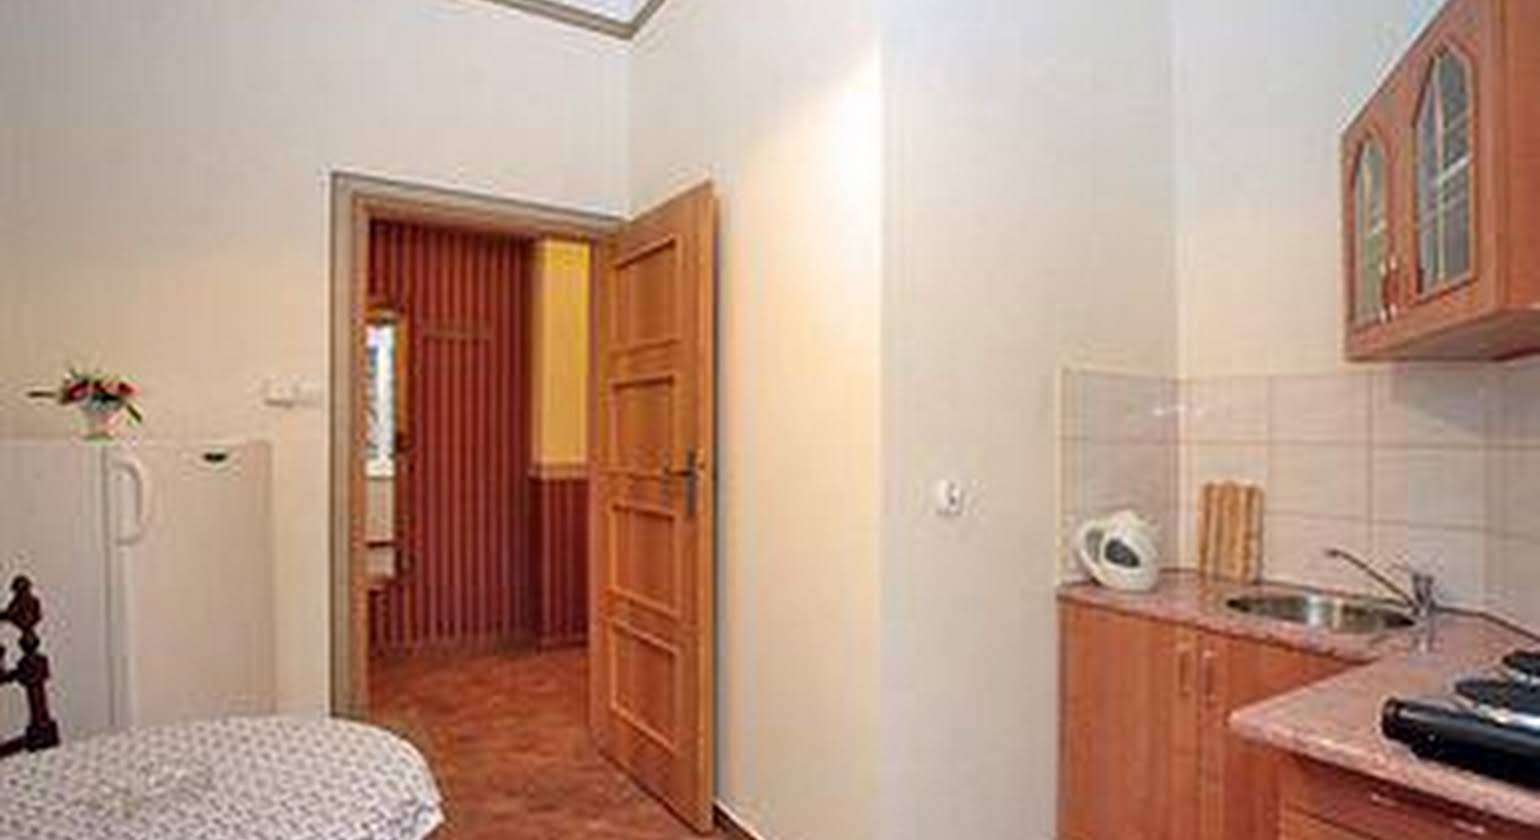 Apartments Florian - Old Town